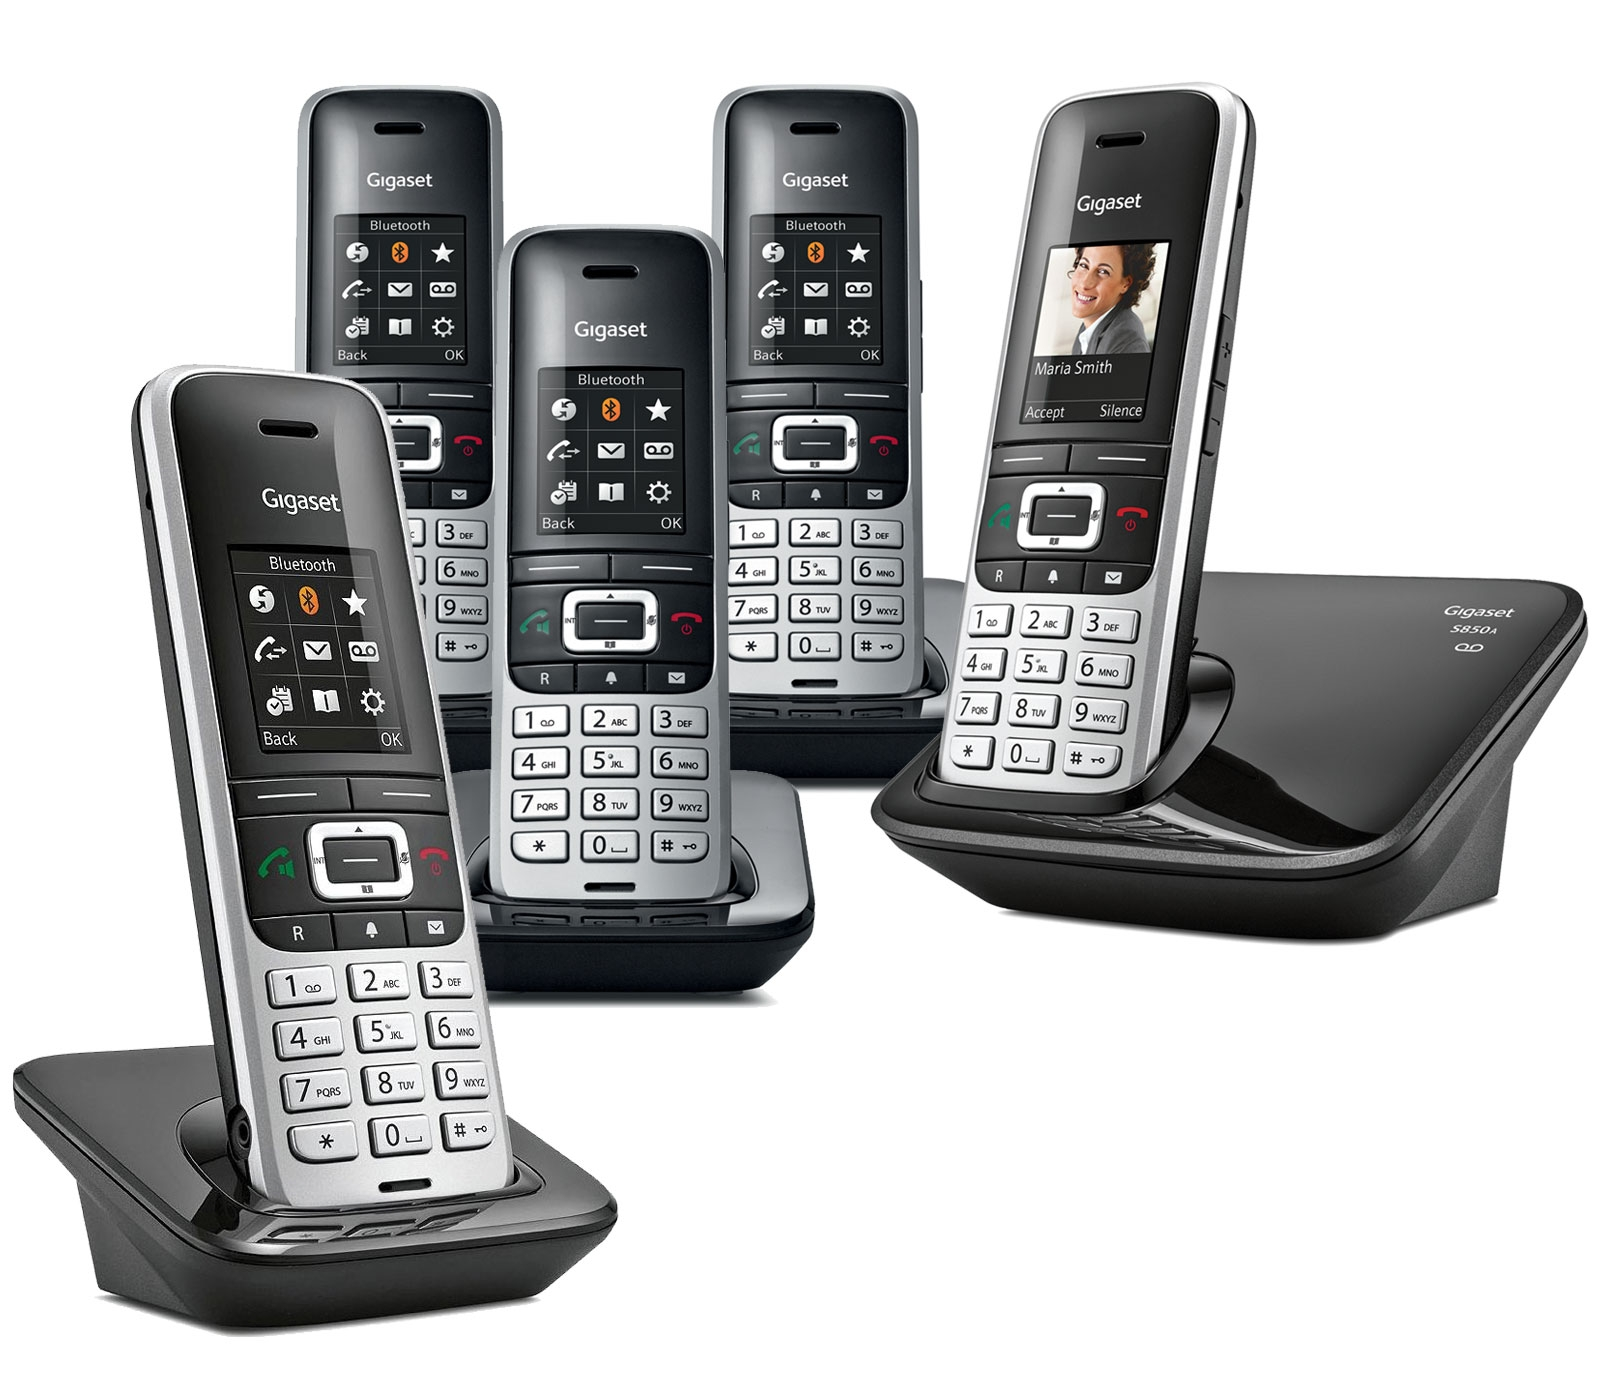 Image of Siemens Gigaset Premium S850A Cordless Phone, Five Handsets with Answer Machine